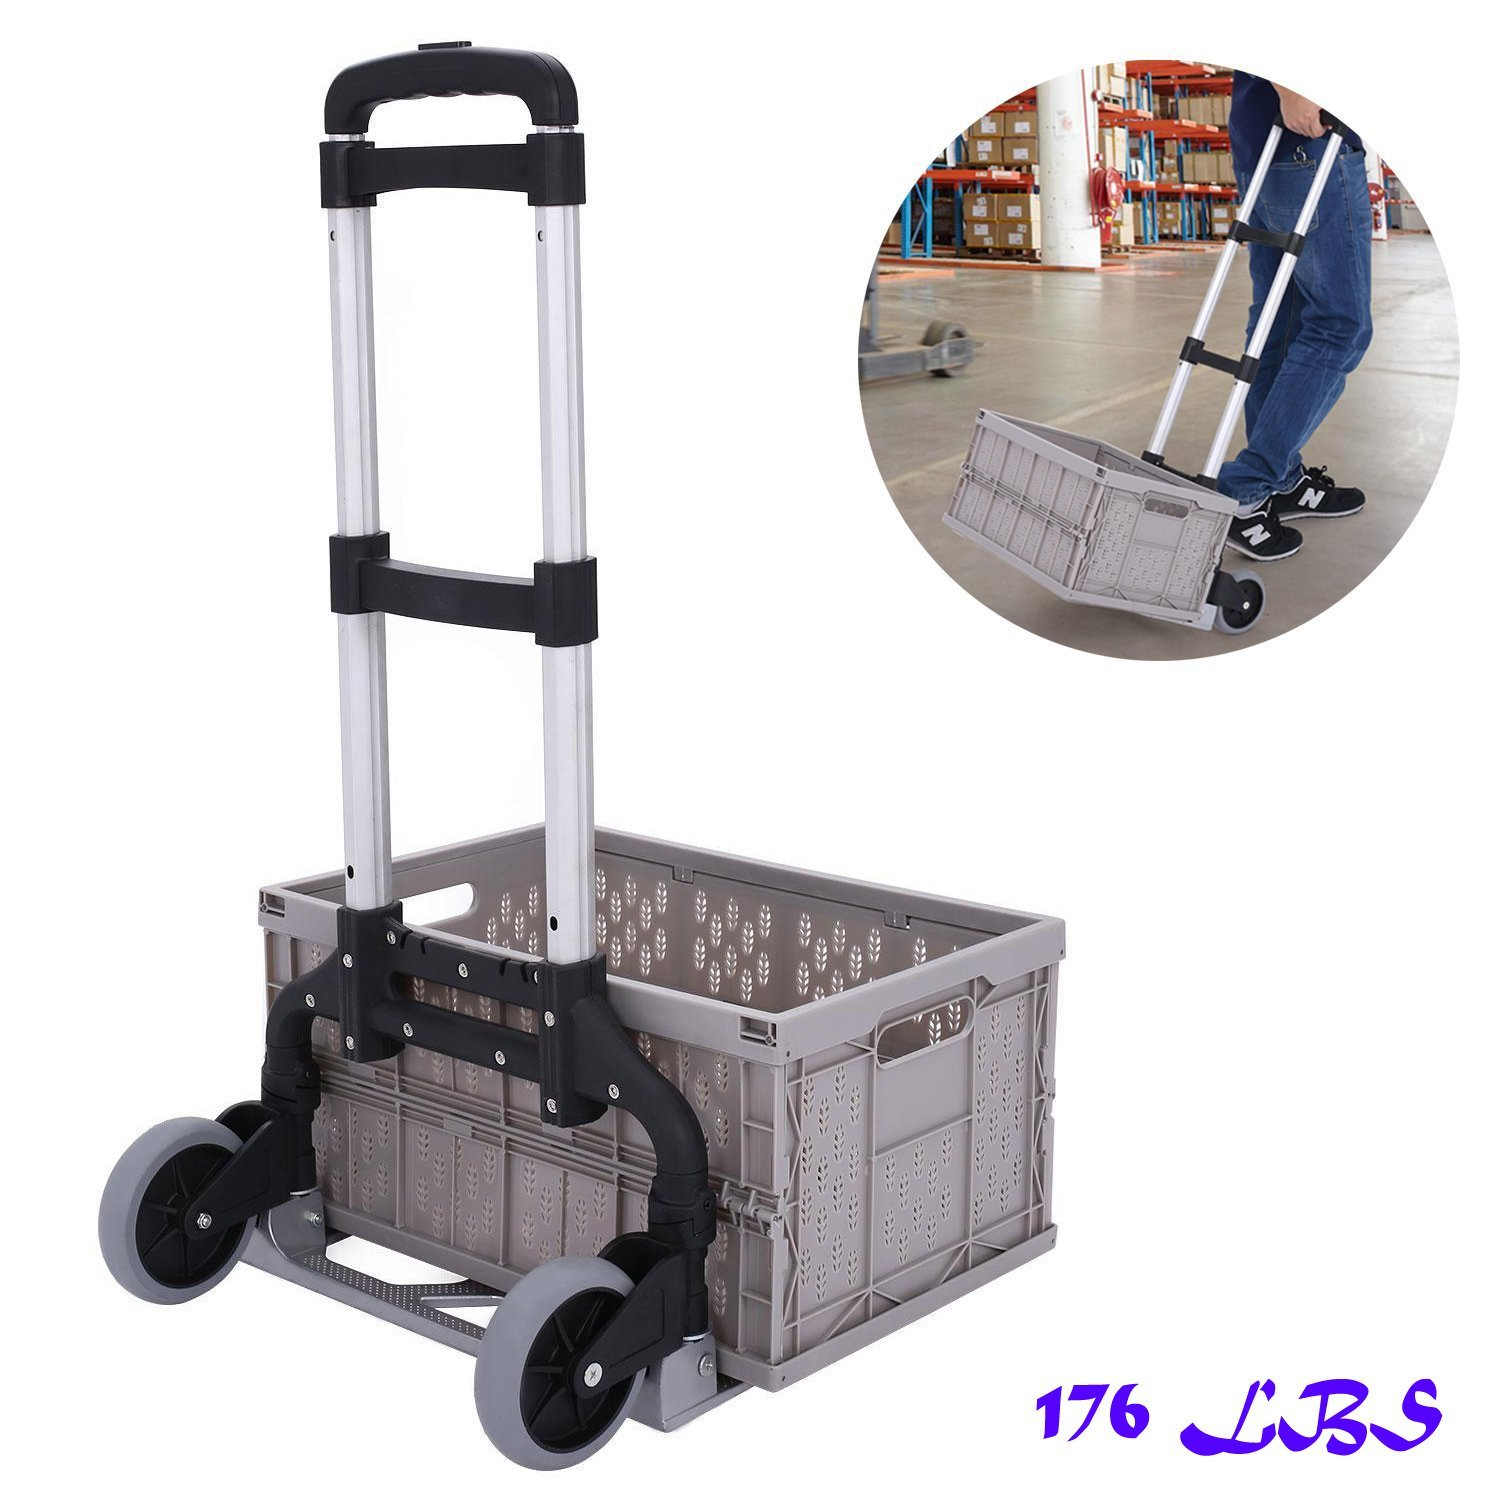 b76004541f22 Cheap Collapsible Dolly, find Collapsible Dolly deals on line at ...